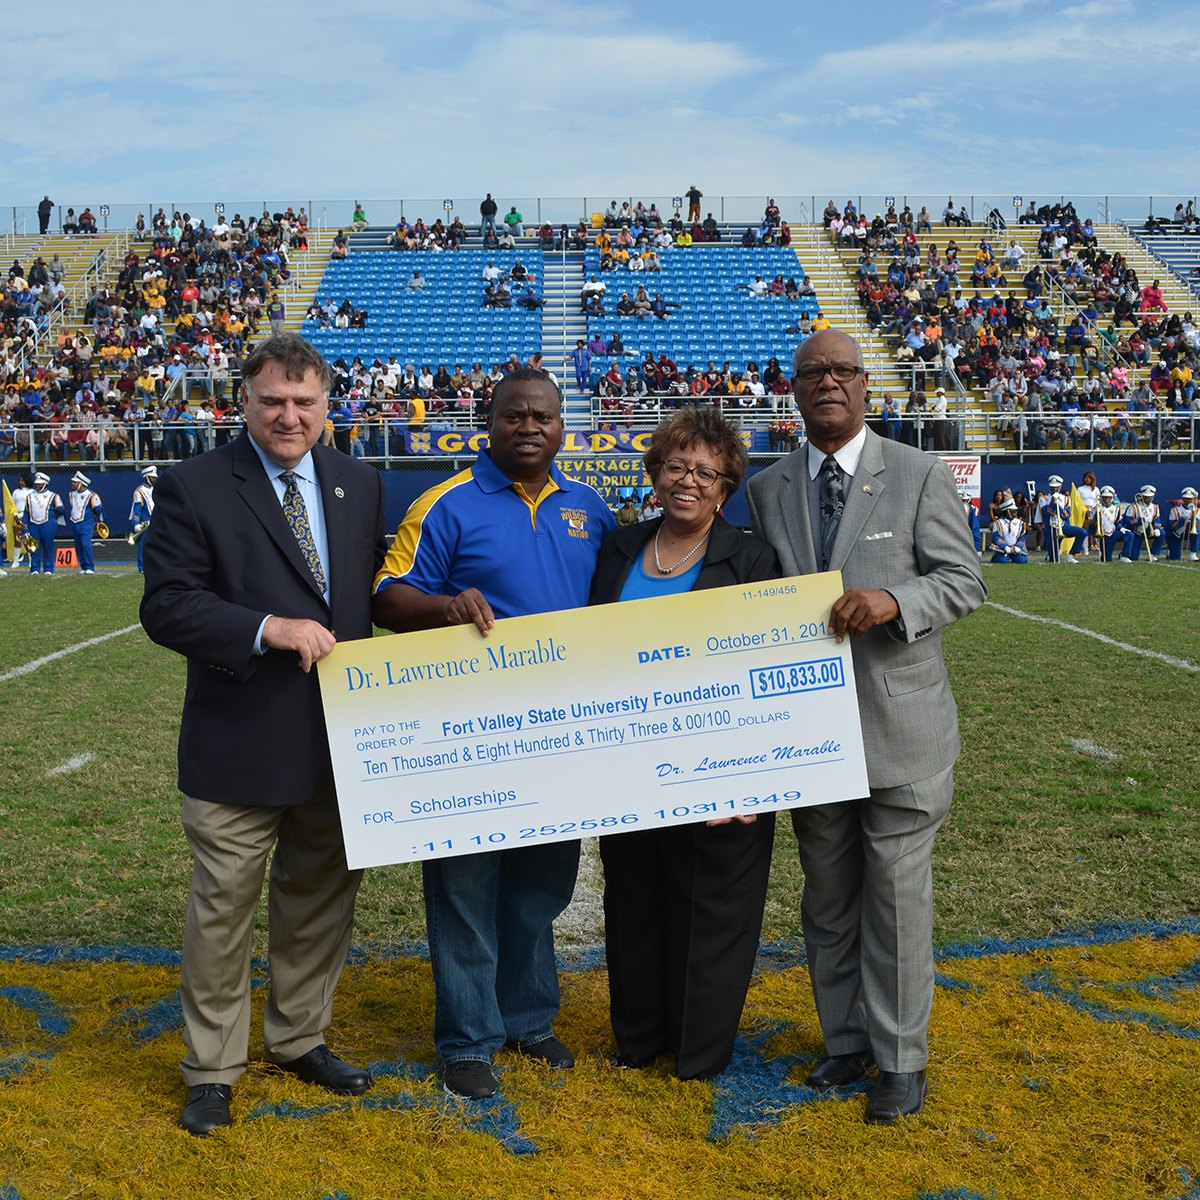 Dr. Lawrence Marable gives $10, 833 check to FVSU during Homecoming.